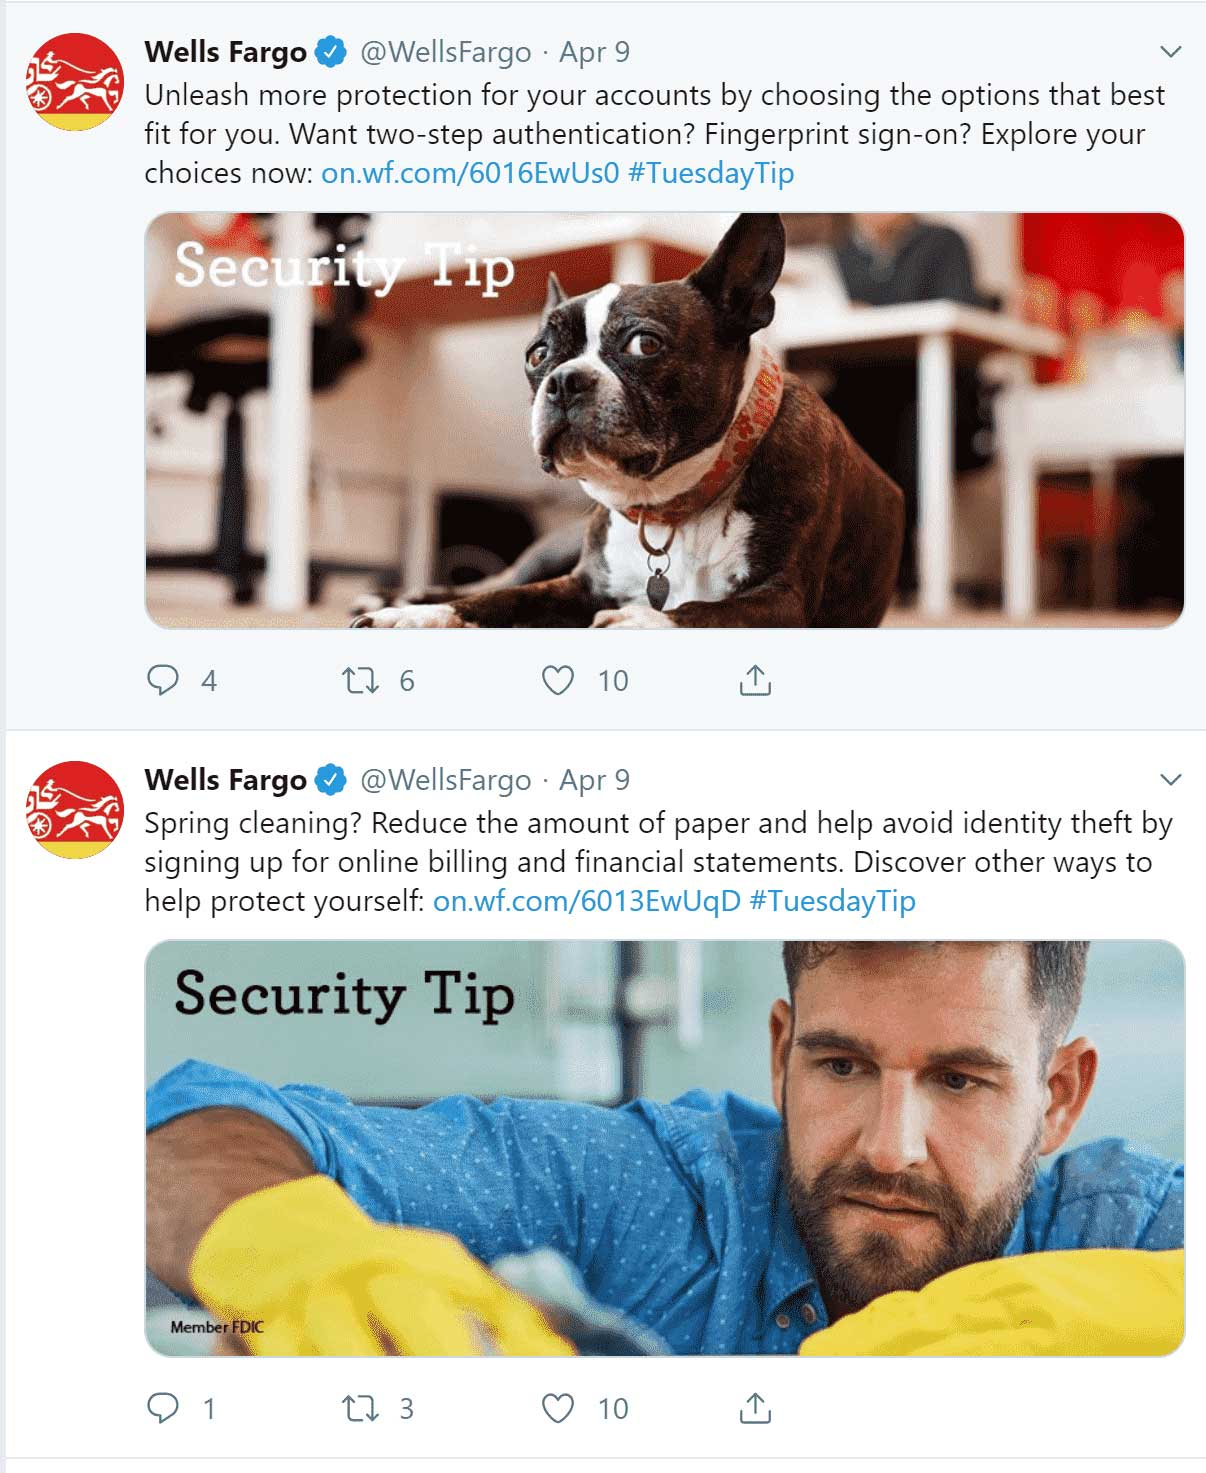 Tweets-Wells-Fargo-integrated-marketing-communication-campaign